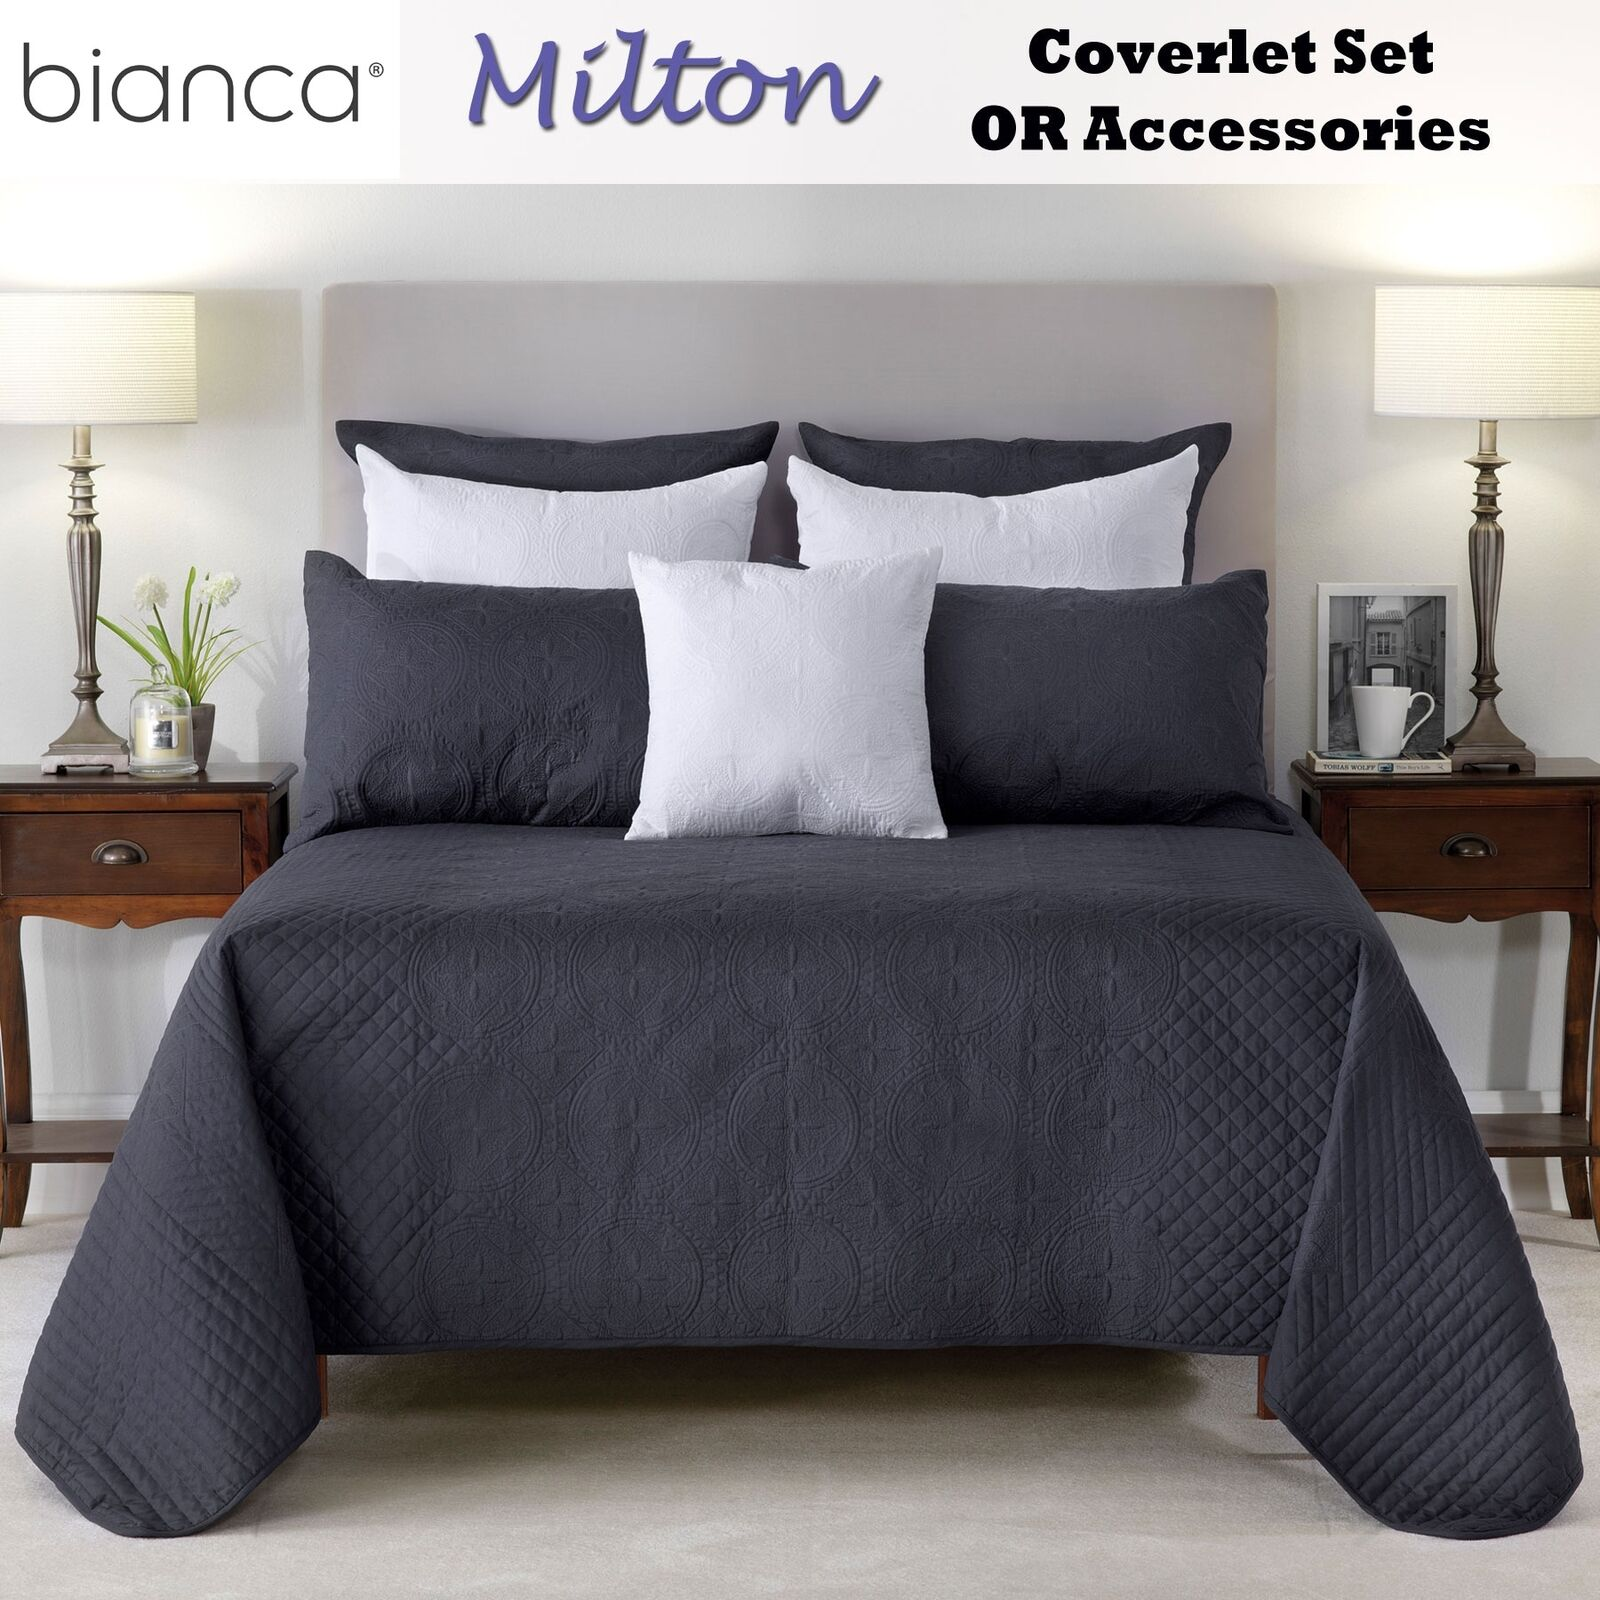 Milton Embroidered Coverlet with Pillowcase(s) OR Accessories by white